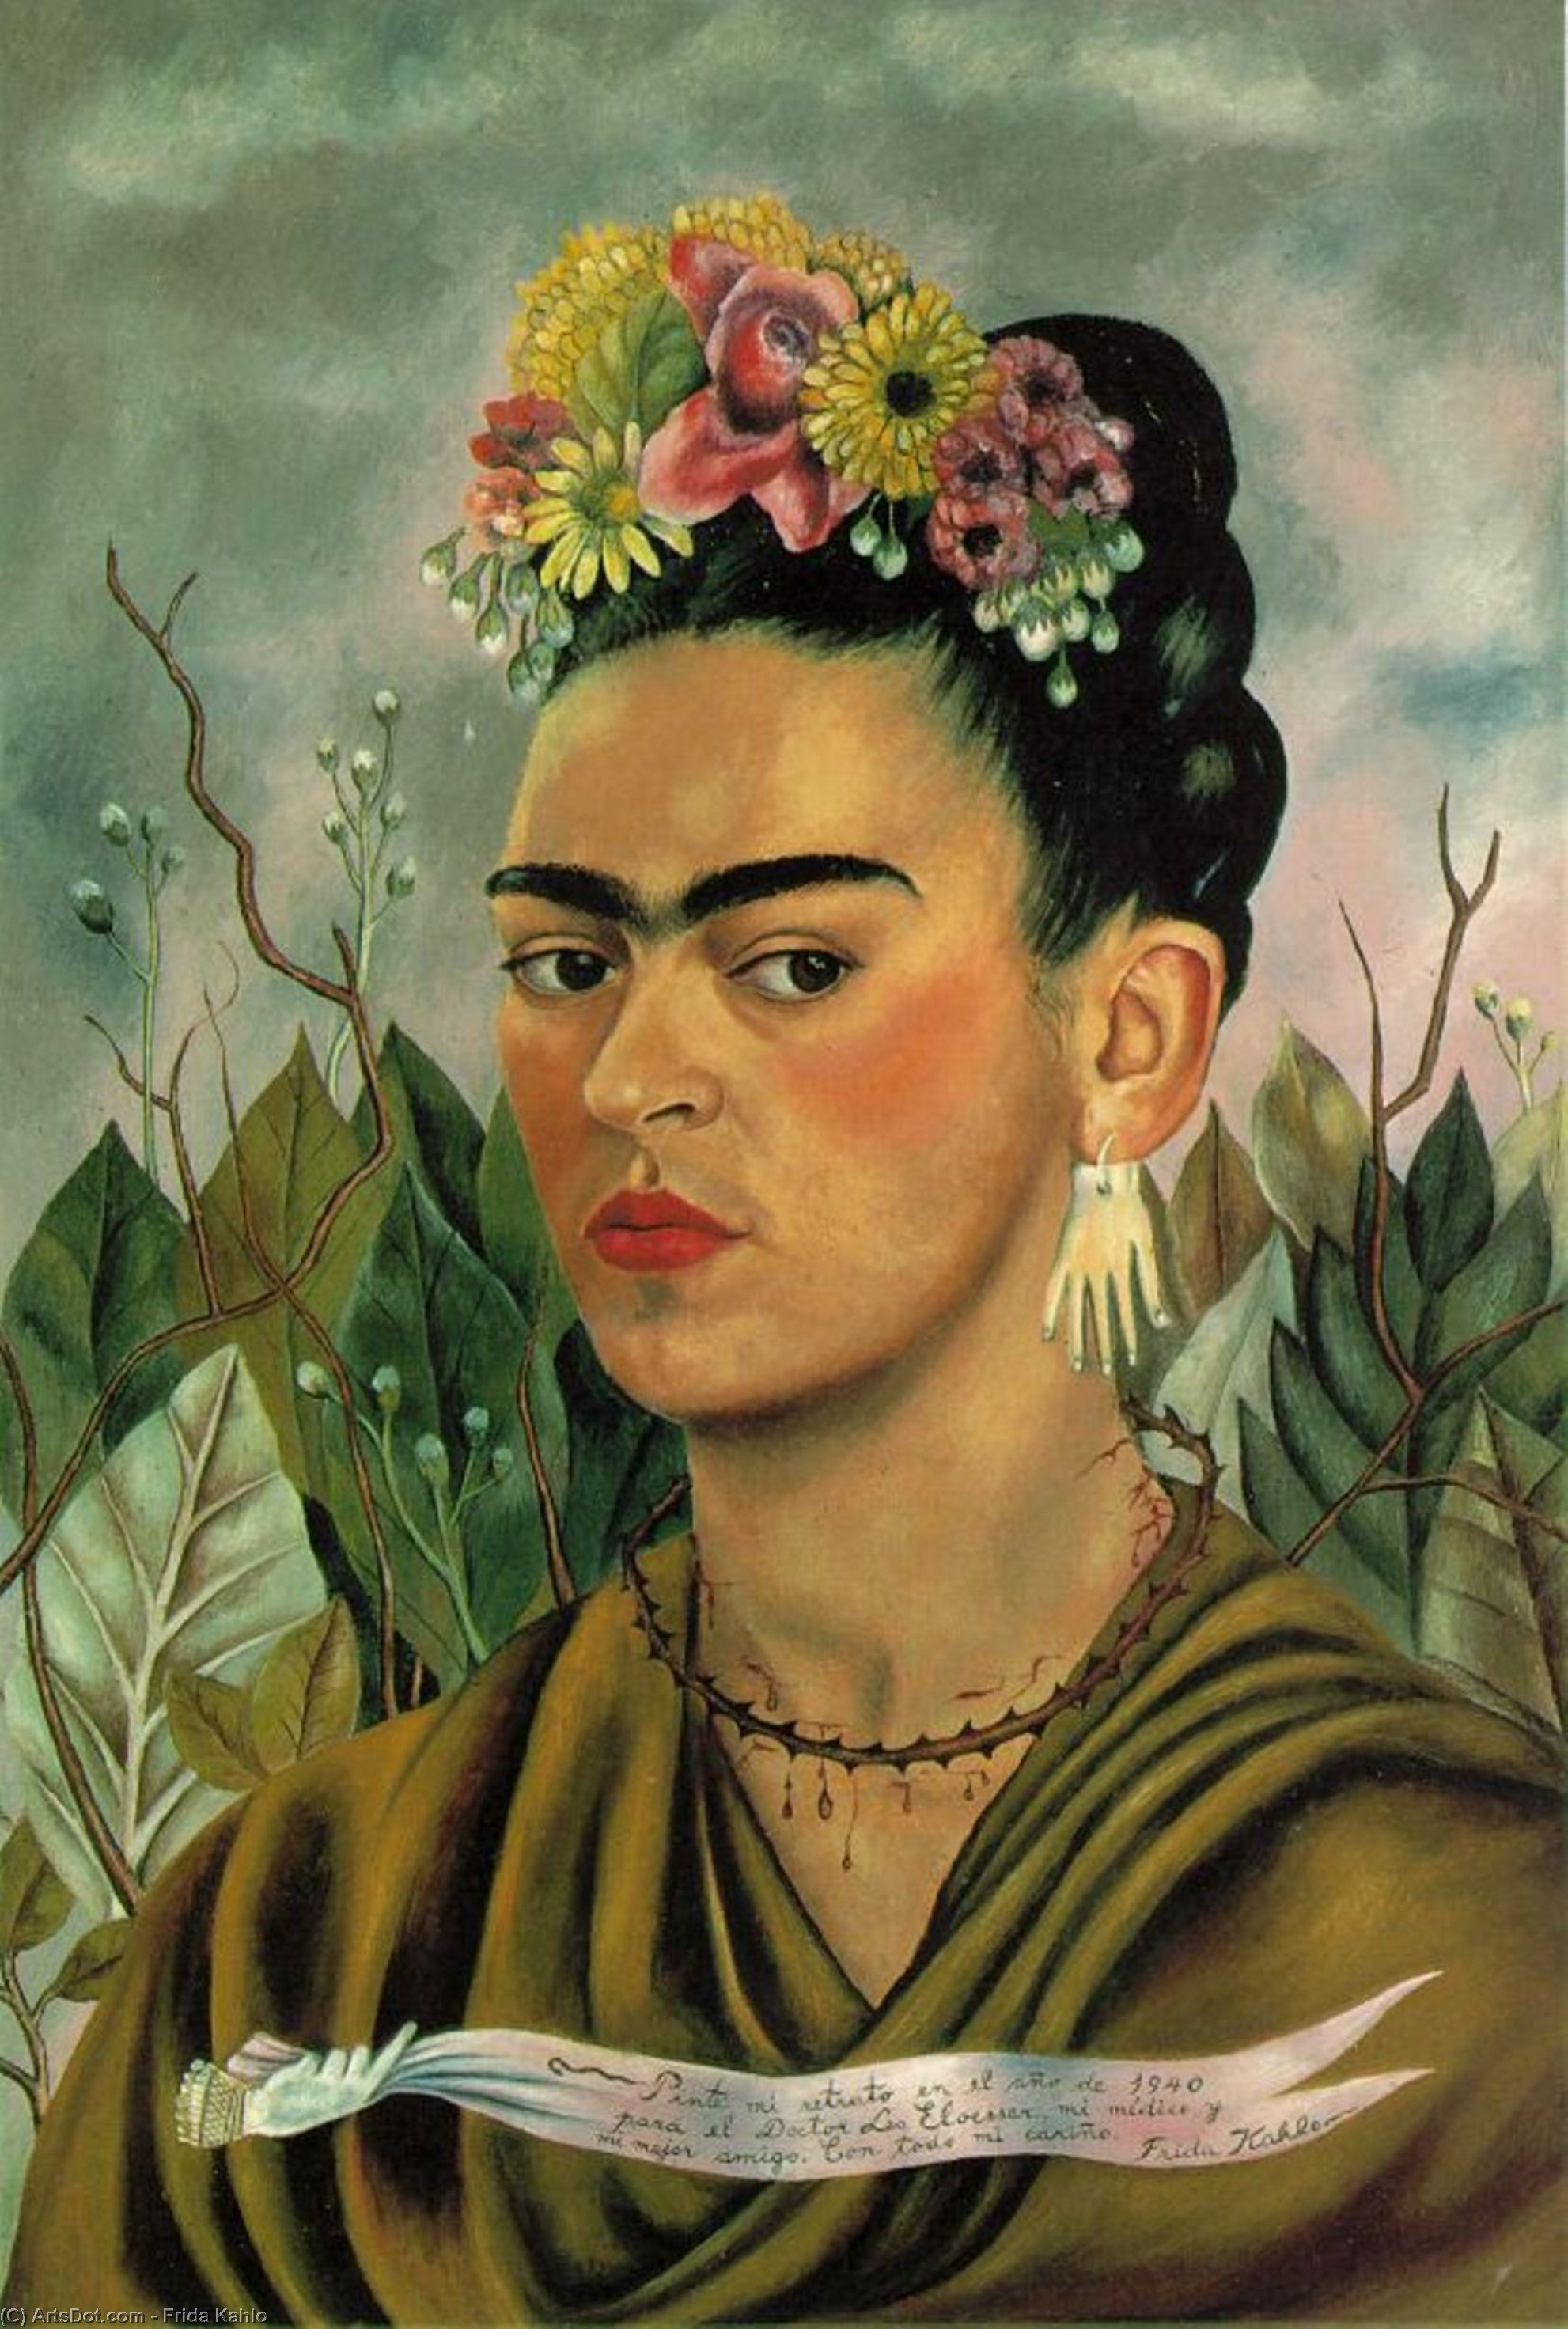 Self-Portrait dedicated to Dr. Eloesser by Frida Kahlo (1907-1954, Mexico)